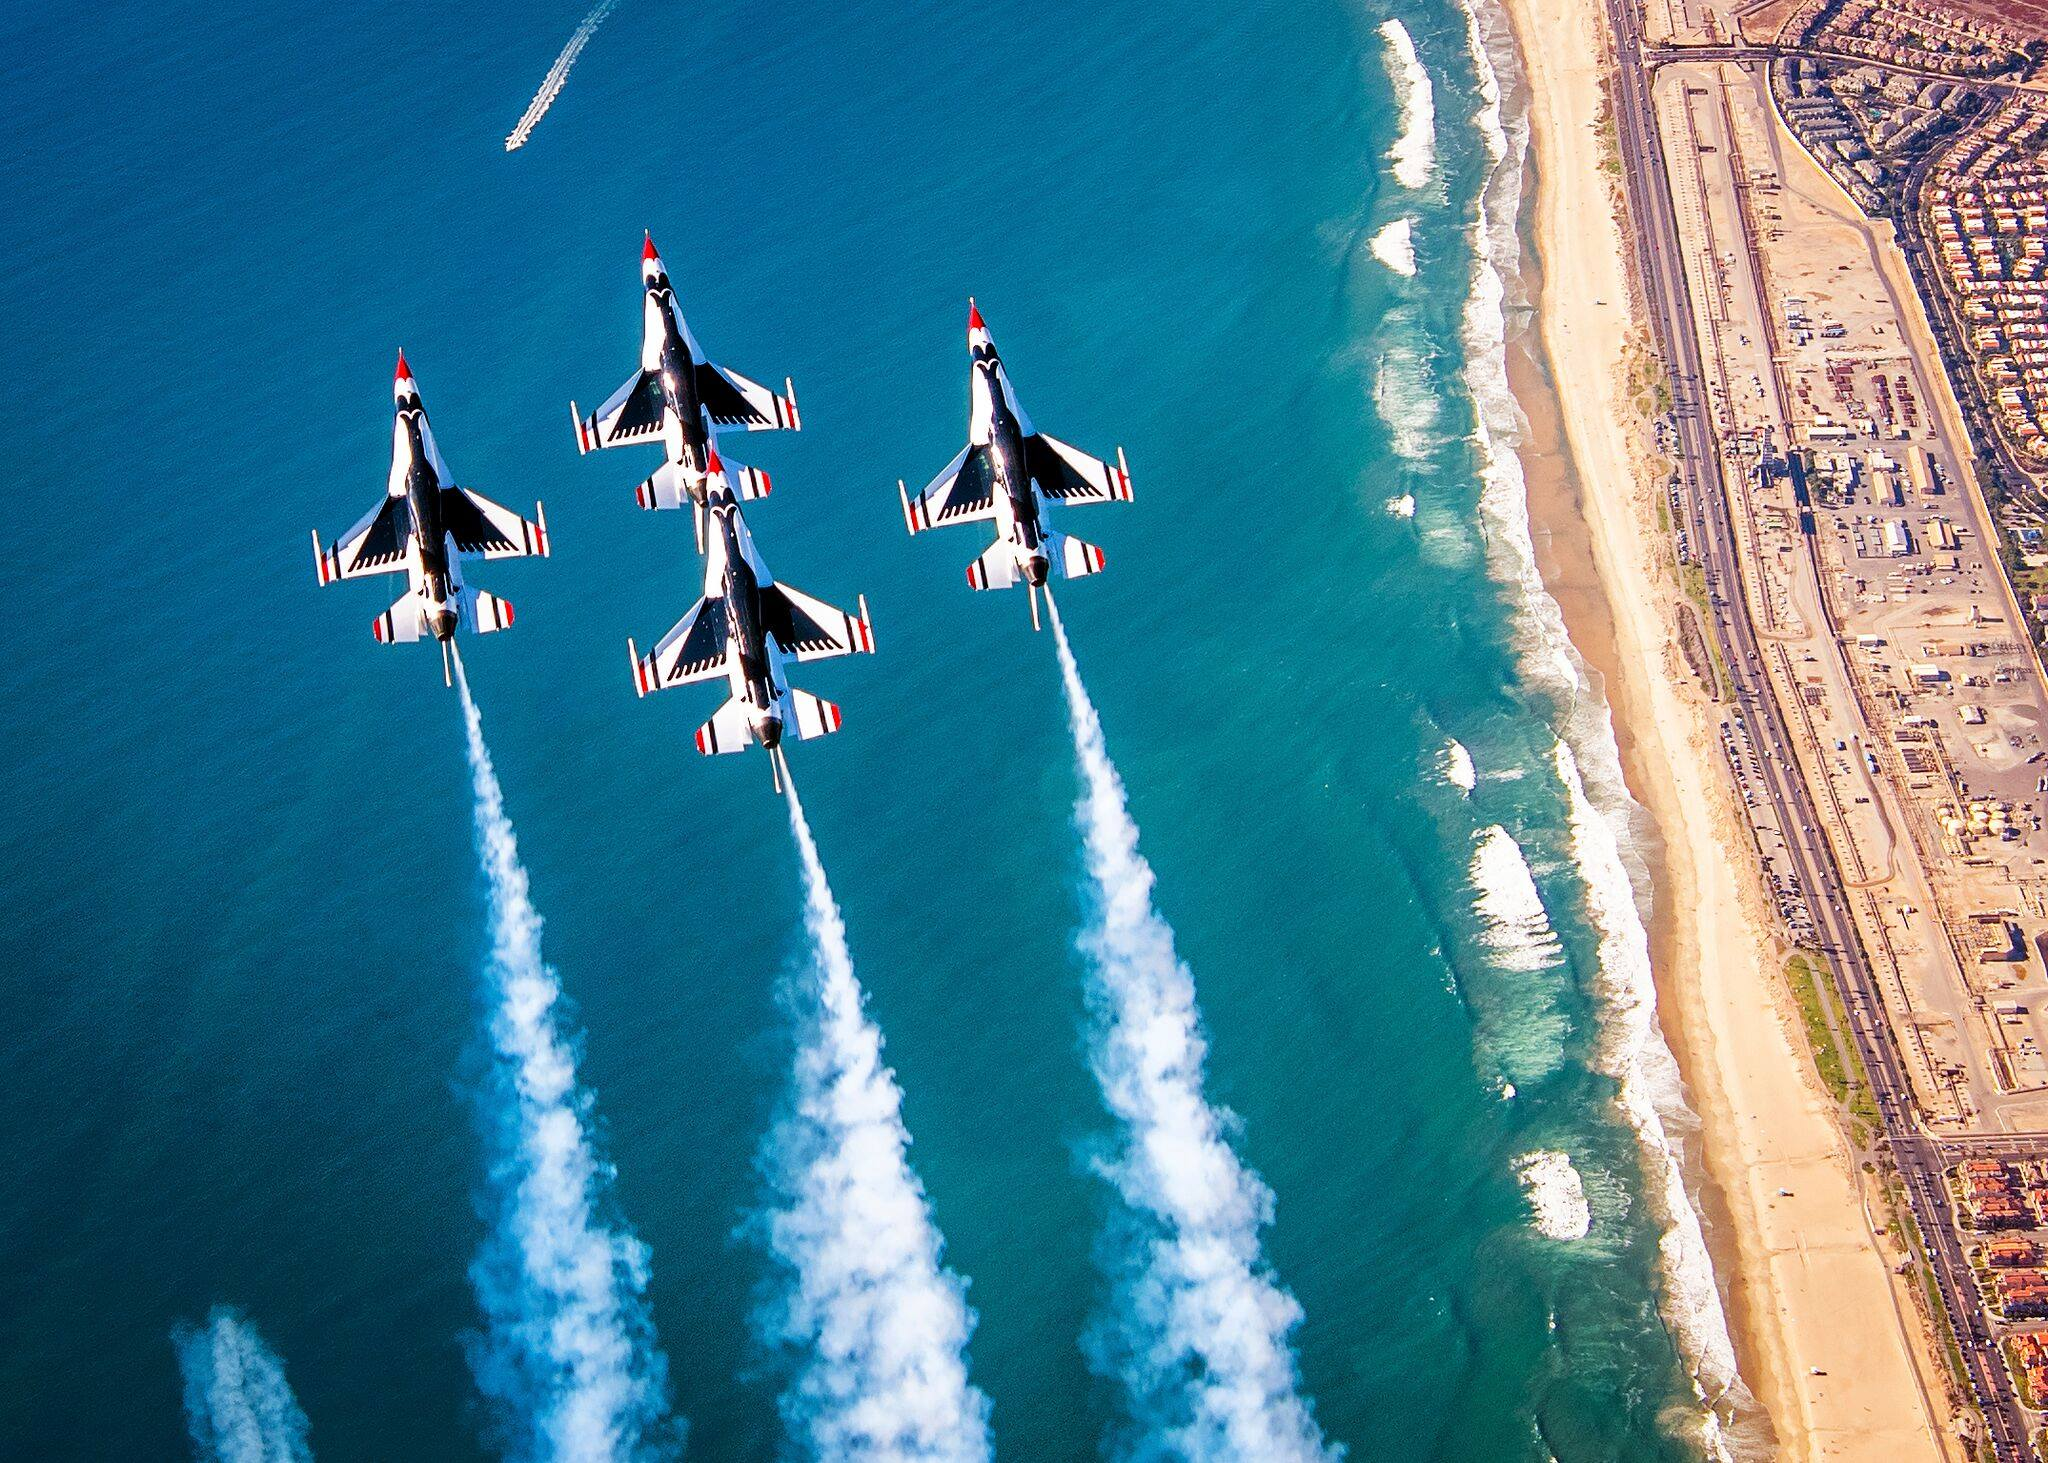 The 2019 Great Pacific Airshow